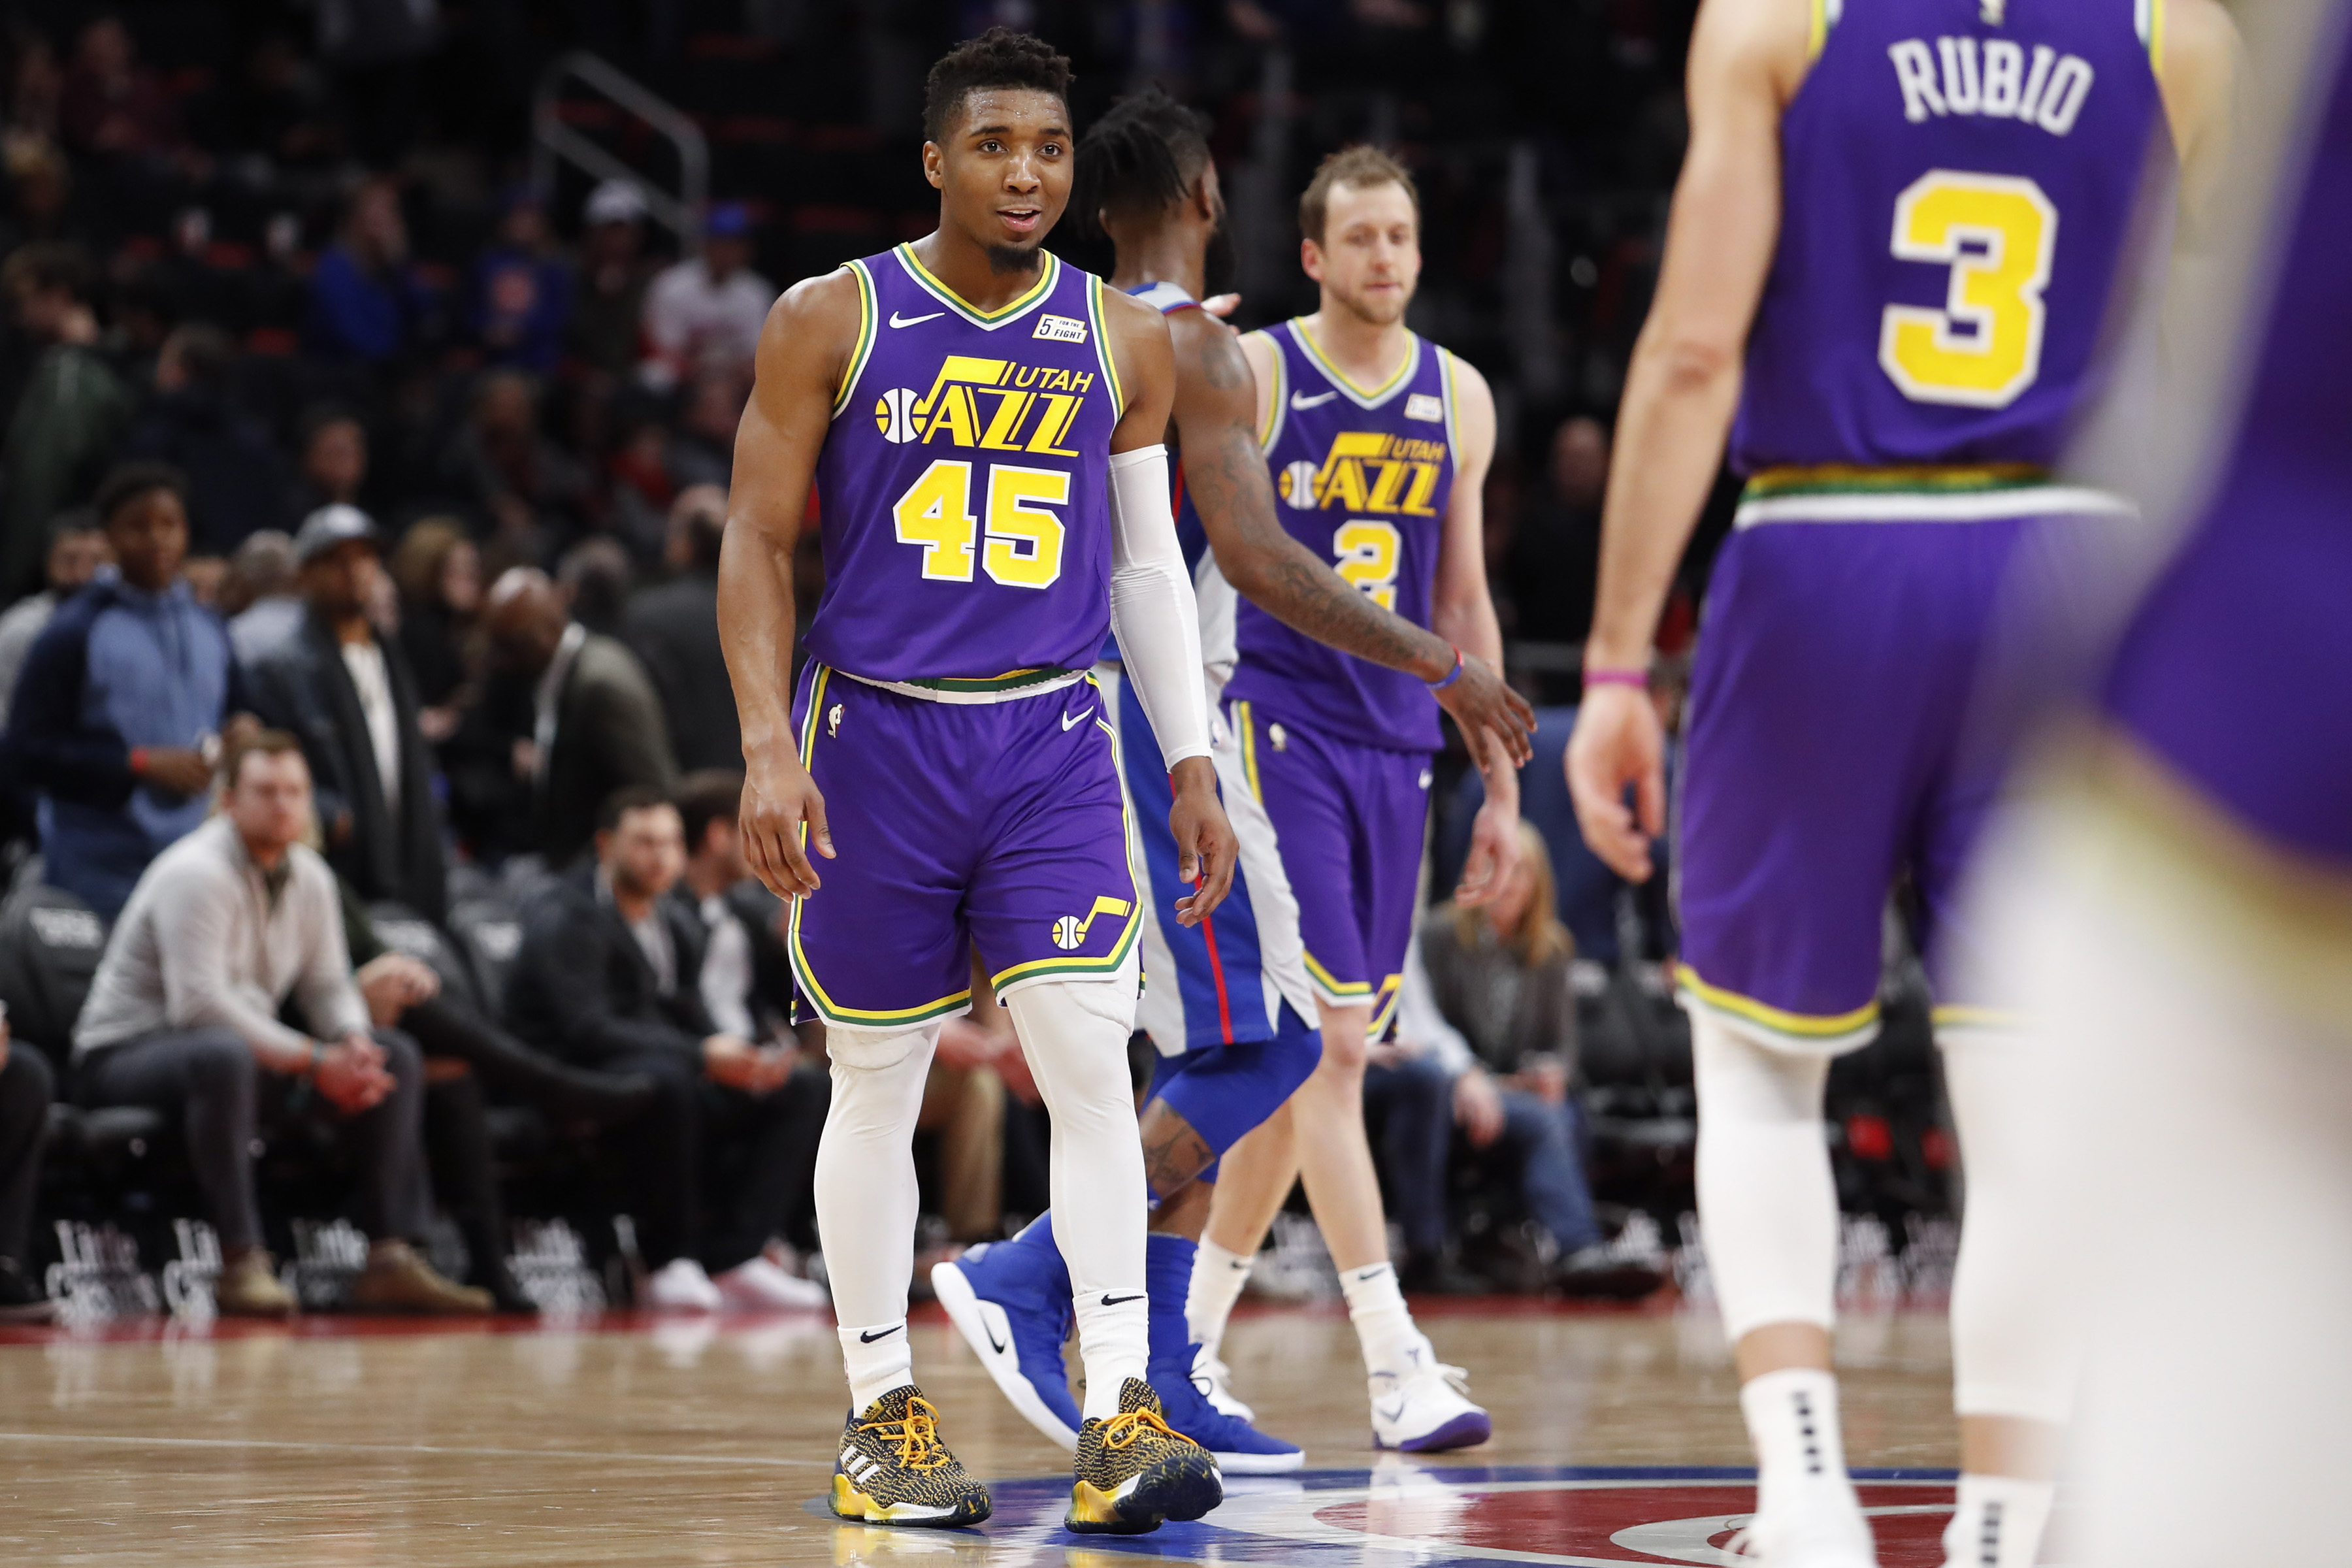 f93927eed6e Donovan Mitchell and the Utah Jazz surge past the Detroit Pistons